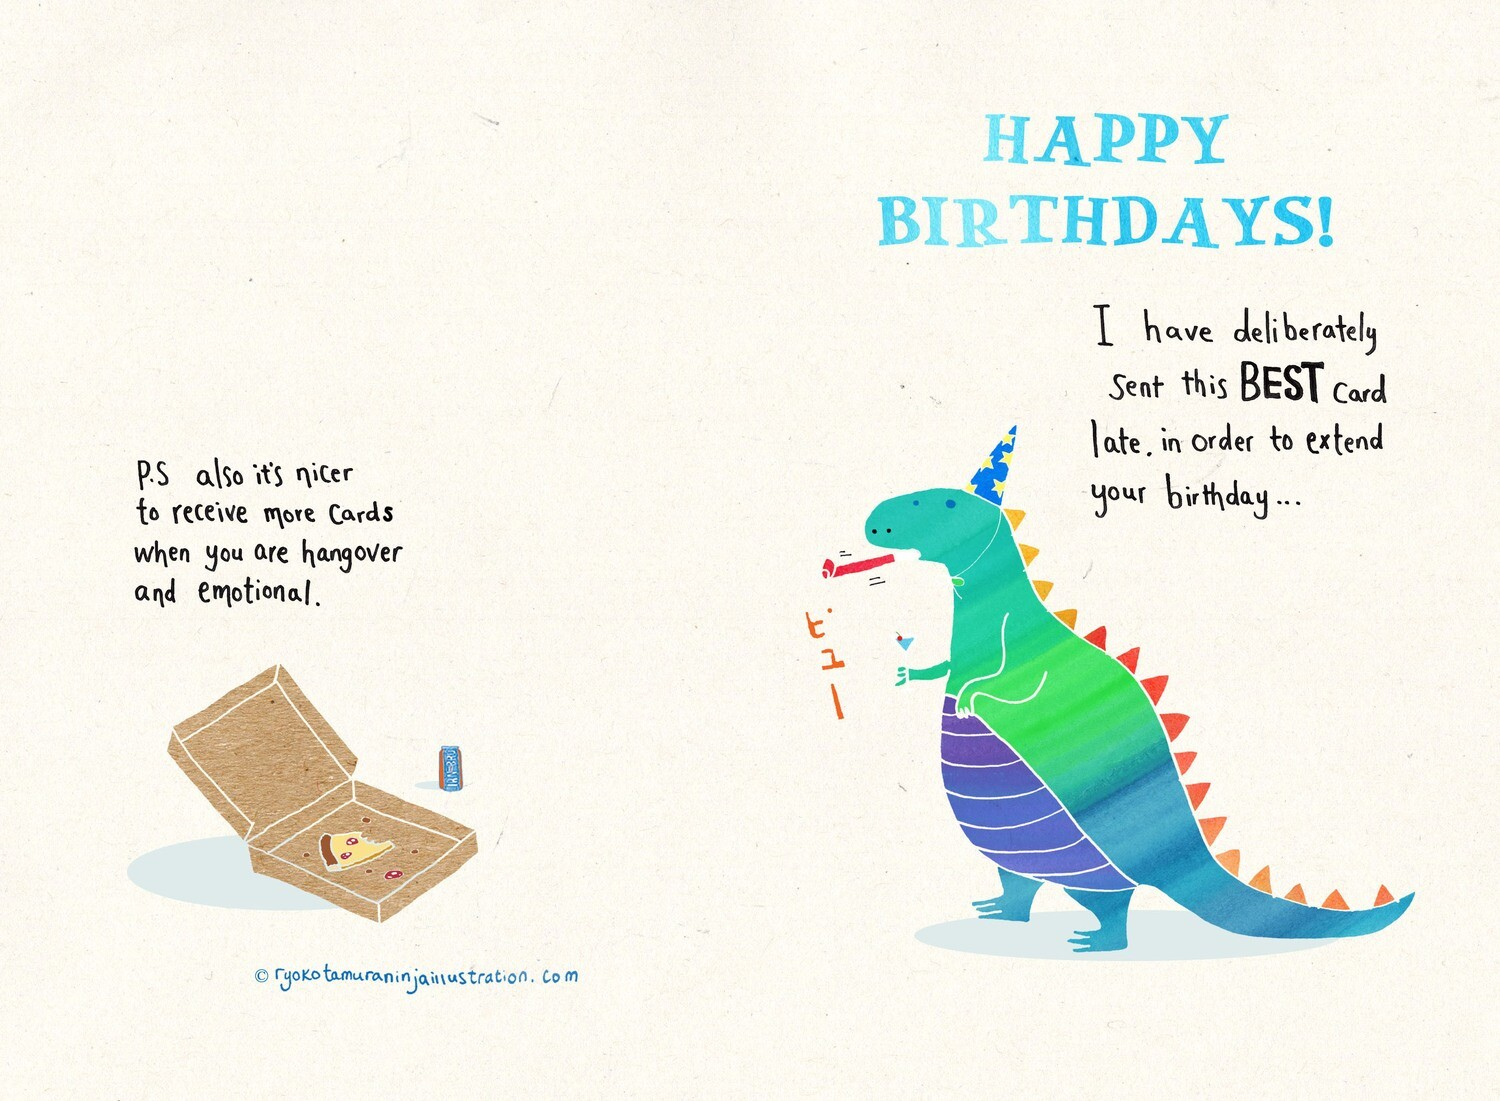 Dino belated bday card with envelope